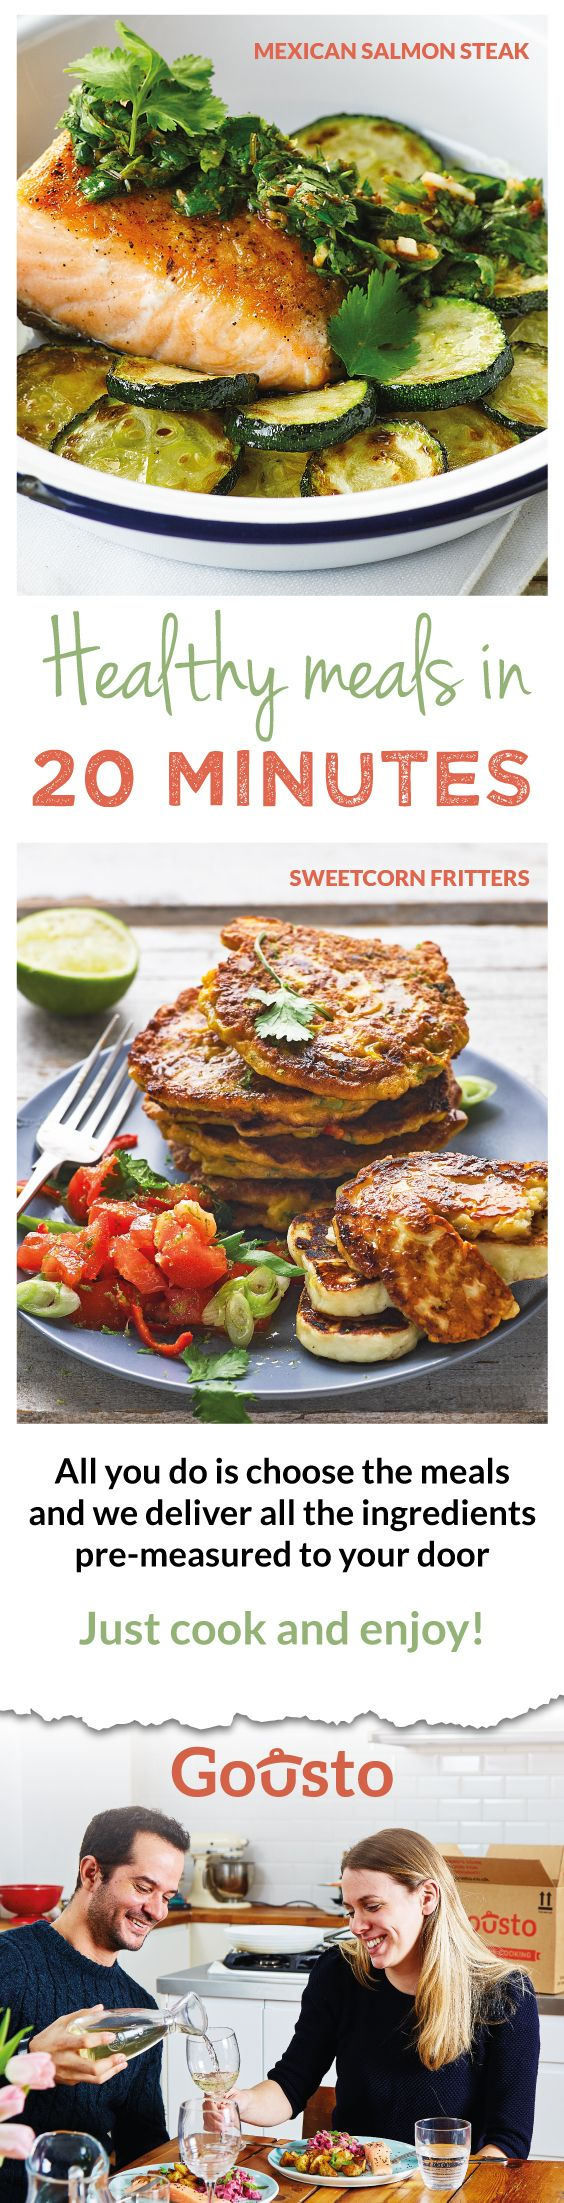 Discover amazing new recipes with perfectly pre-portioned ingredients delivered right to your door with easy to follow recipe cards. All you have to do is cook! To celebrate our launch on Pinterest we're offering £25 Off your first order!